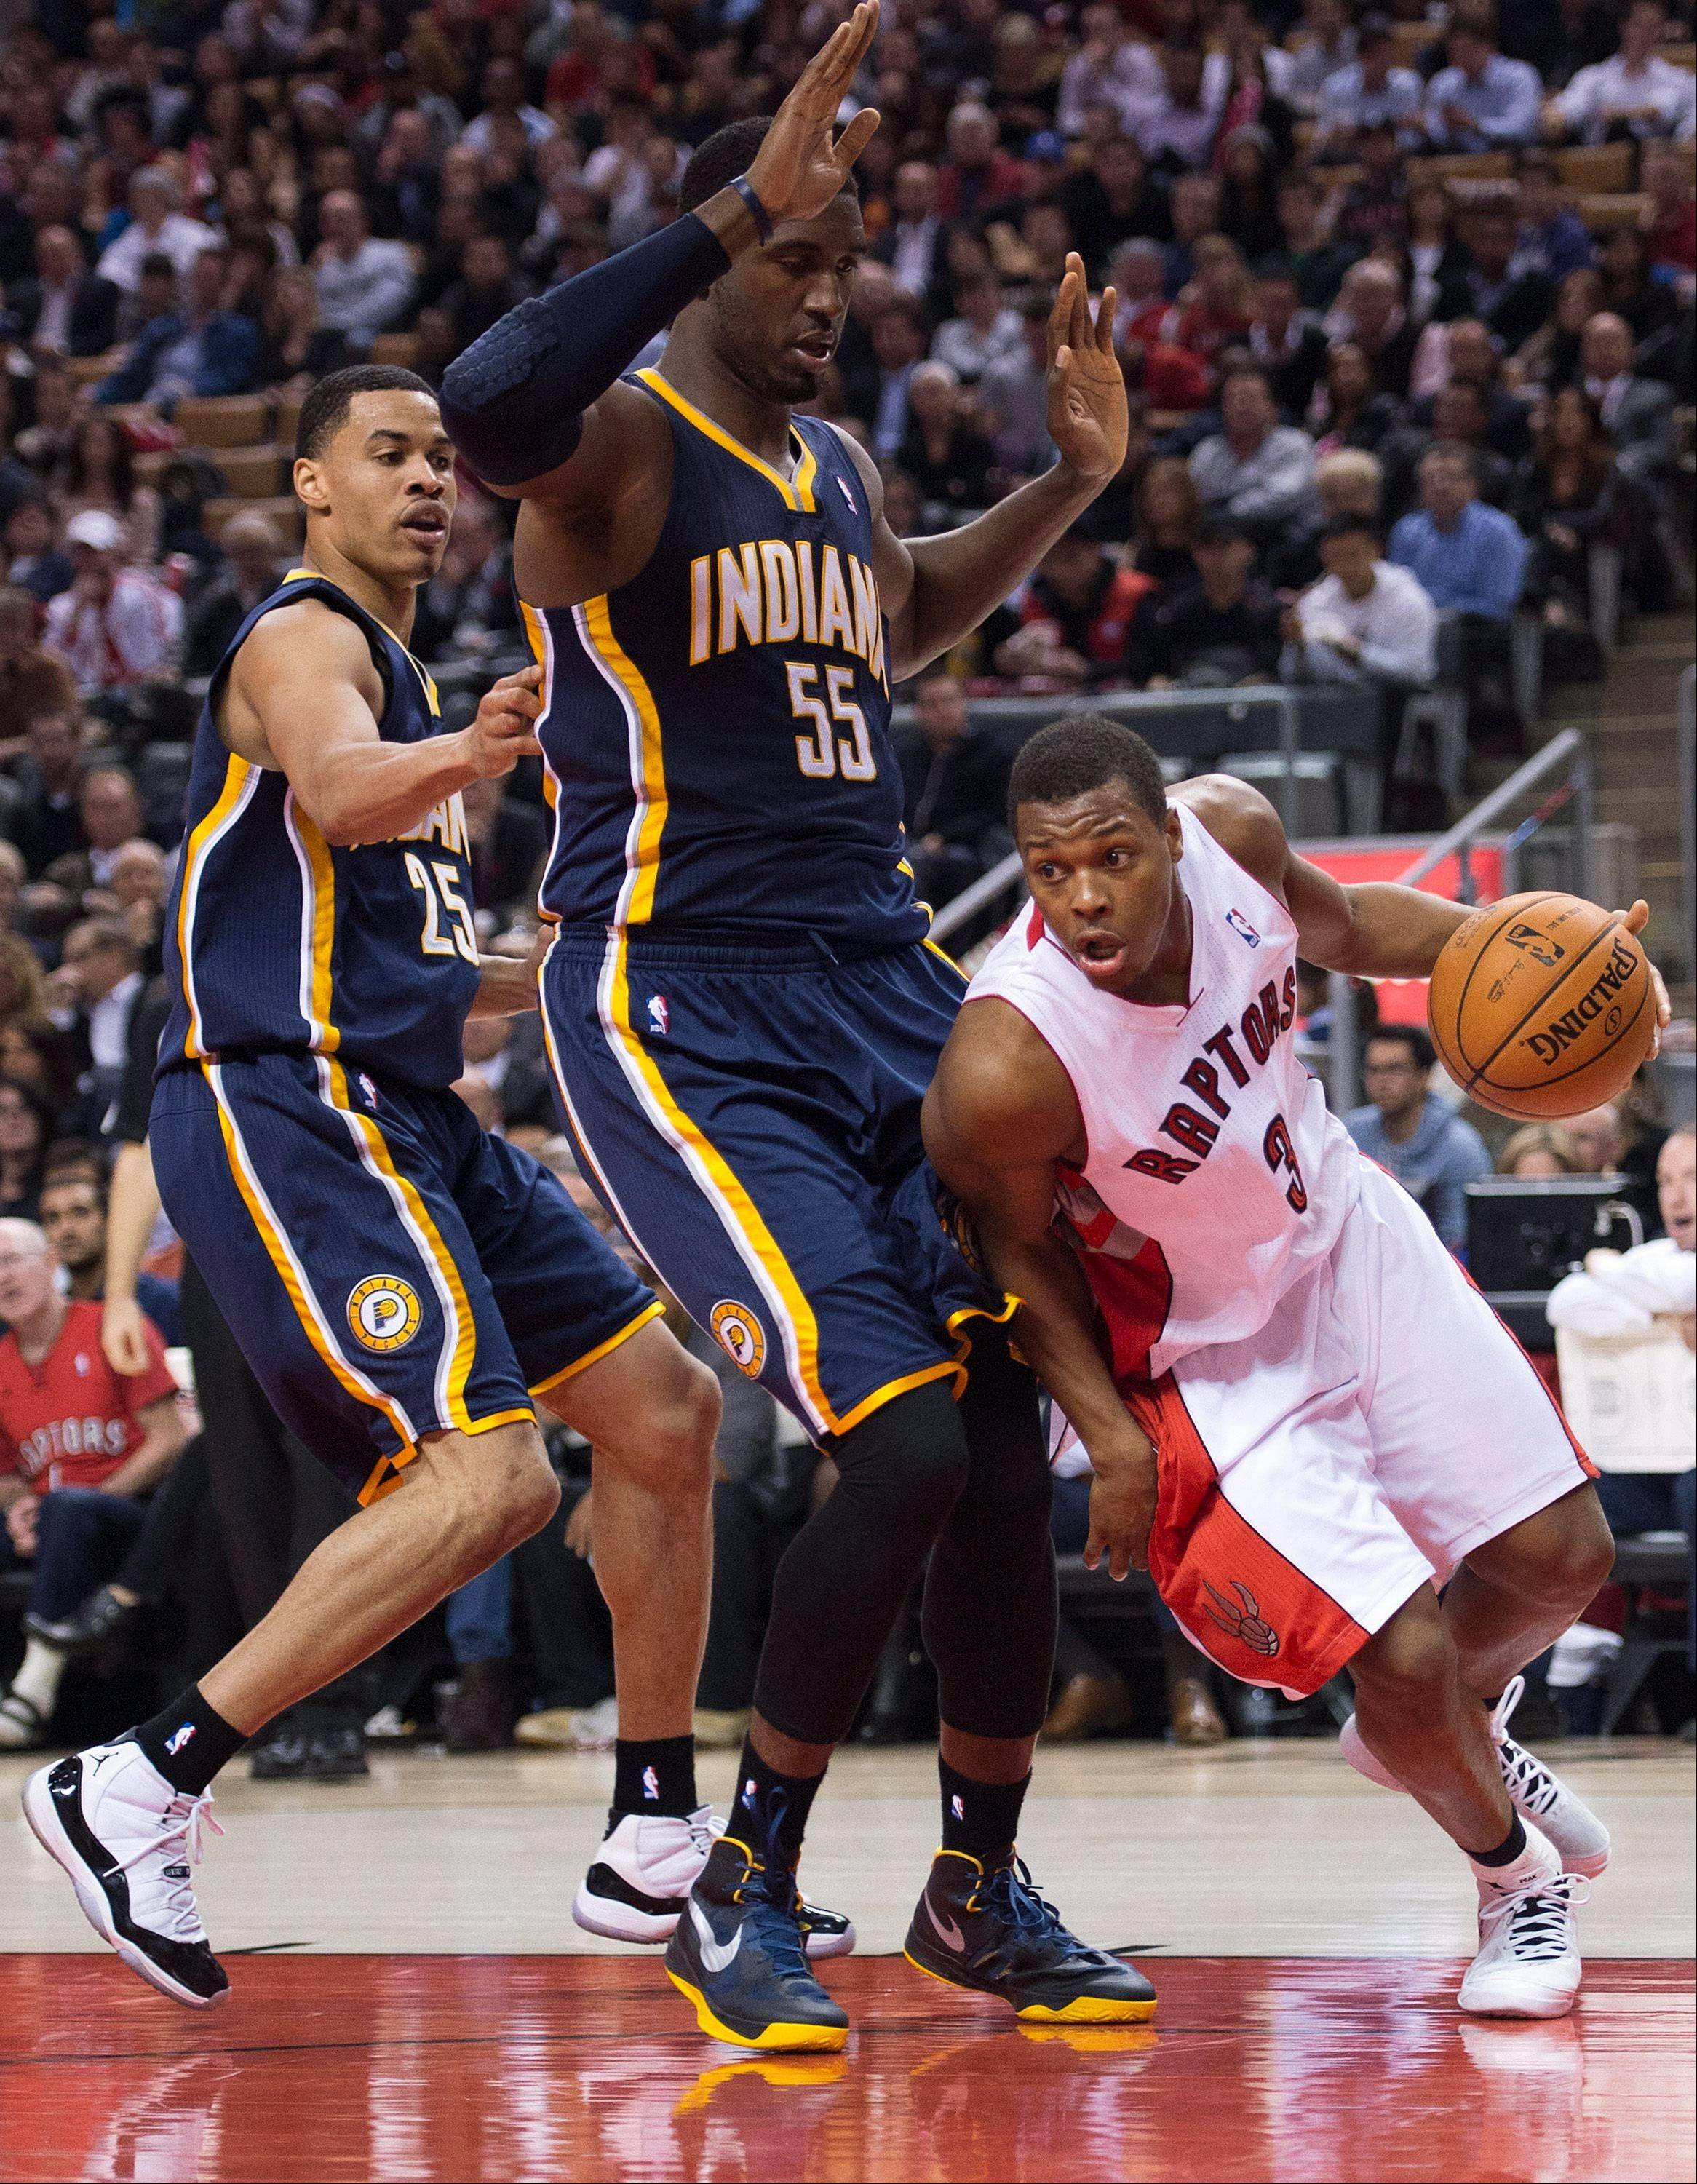 Pacers' Hill hits winner in closing seconds to beat Raptors